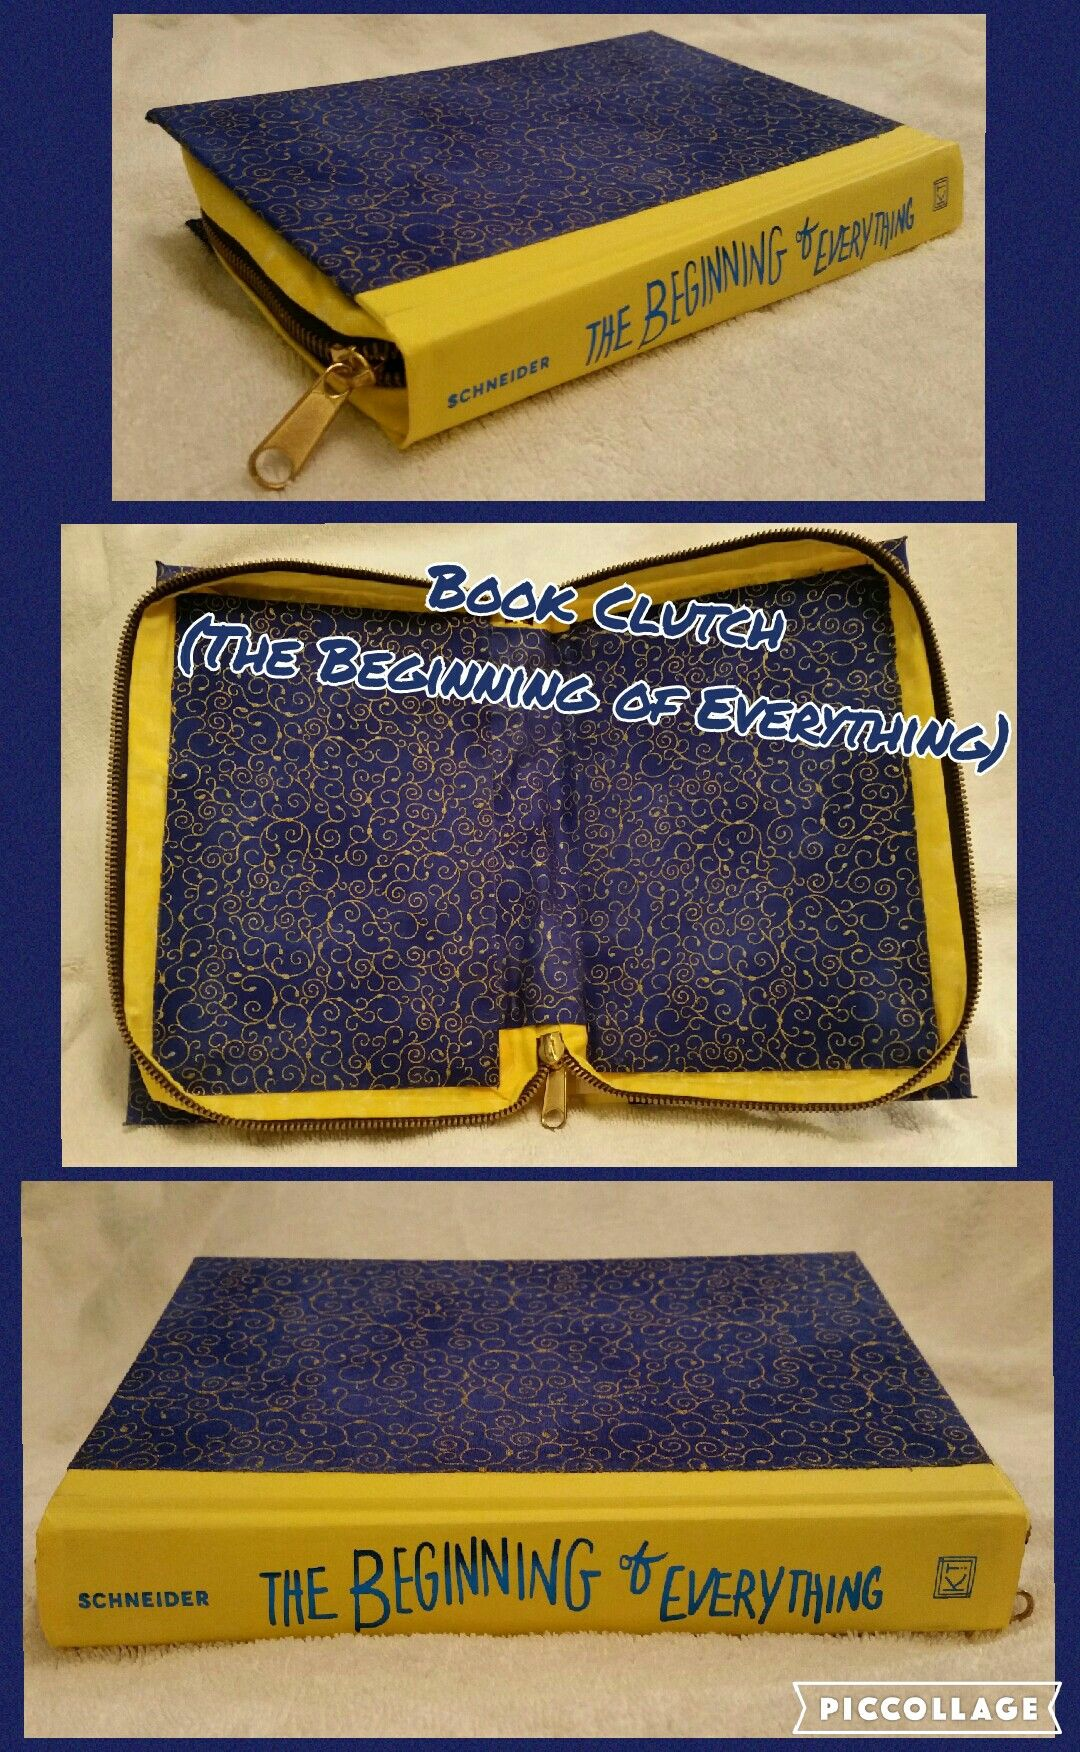 Book Clutch Handmade (Titled: The Beginning of Everything) Yellow Spine, Blue with Gold Spiral Pattern on the Cover, Zips Closed.